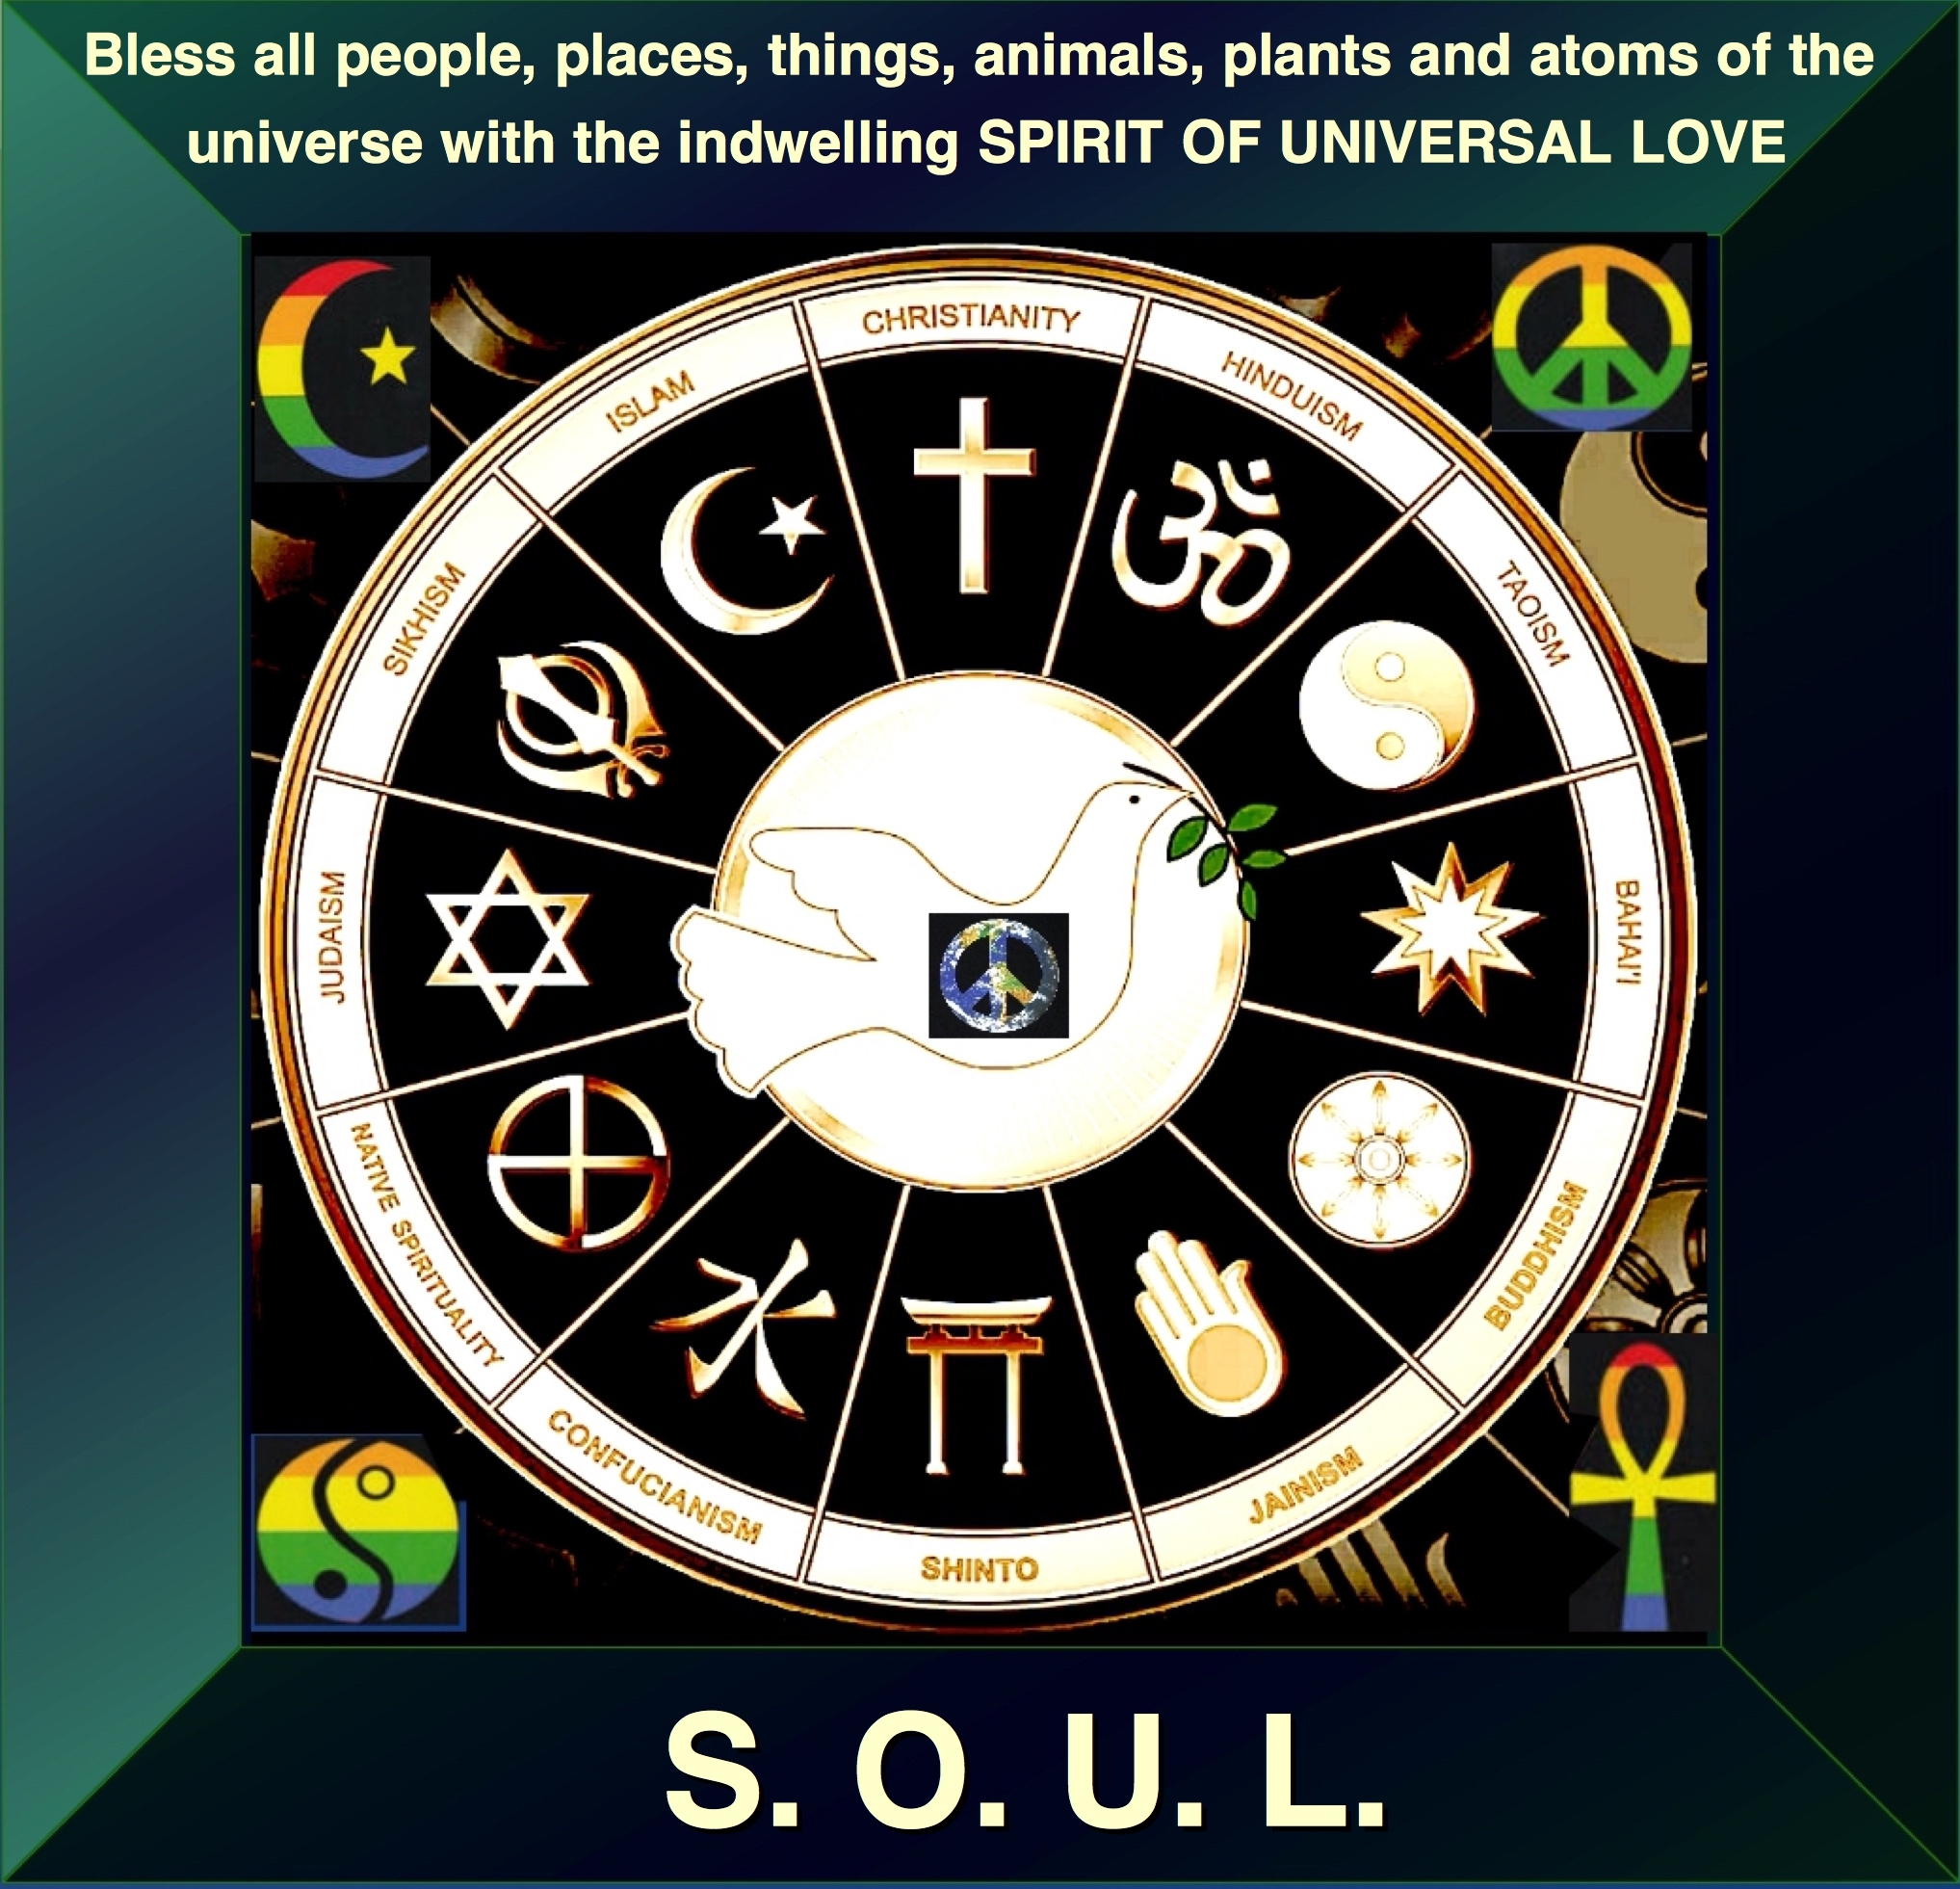 DOUGS SPIRIT WHEEL